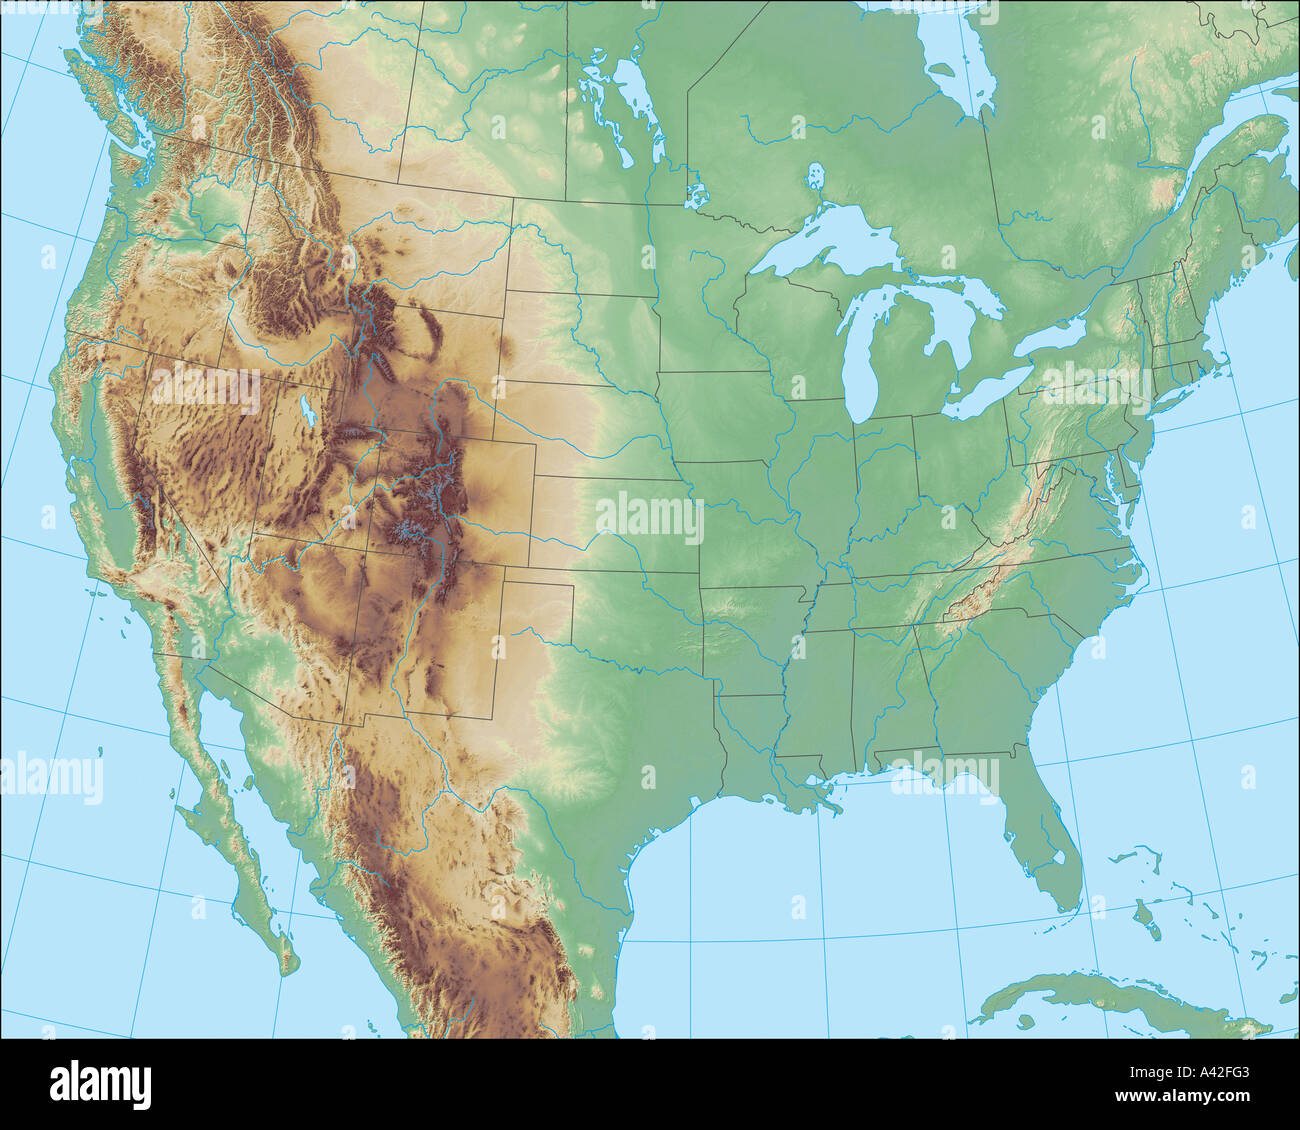 Beautiful But Realistic Terrain Map Of North America Stock Photo